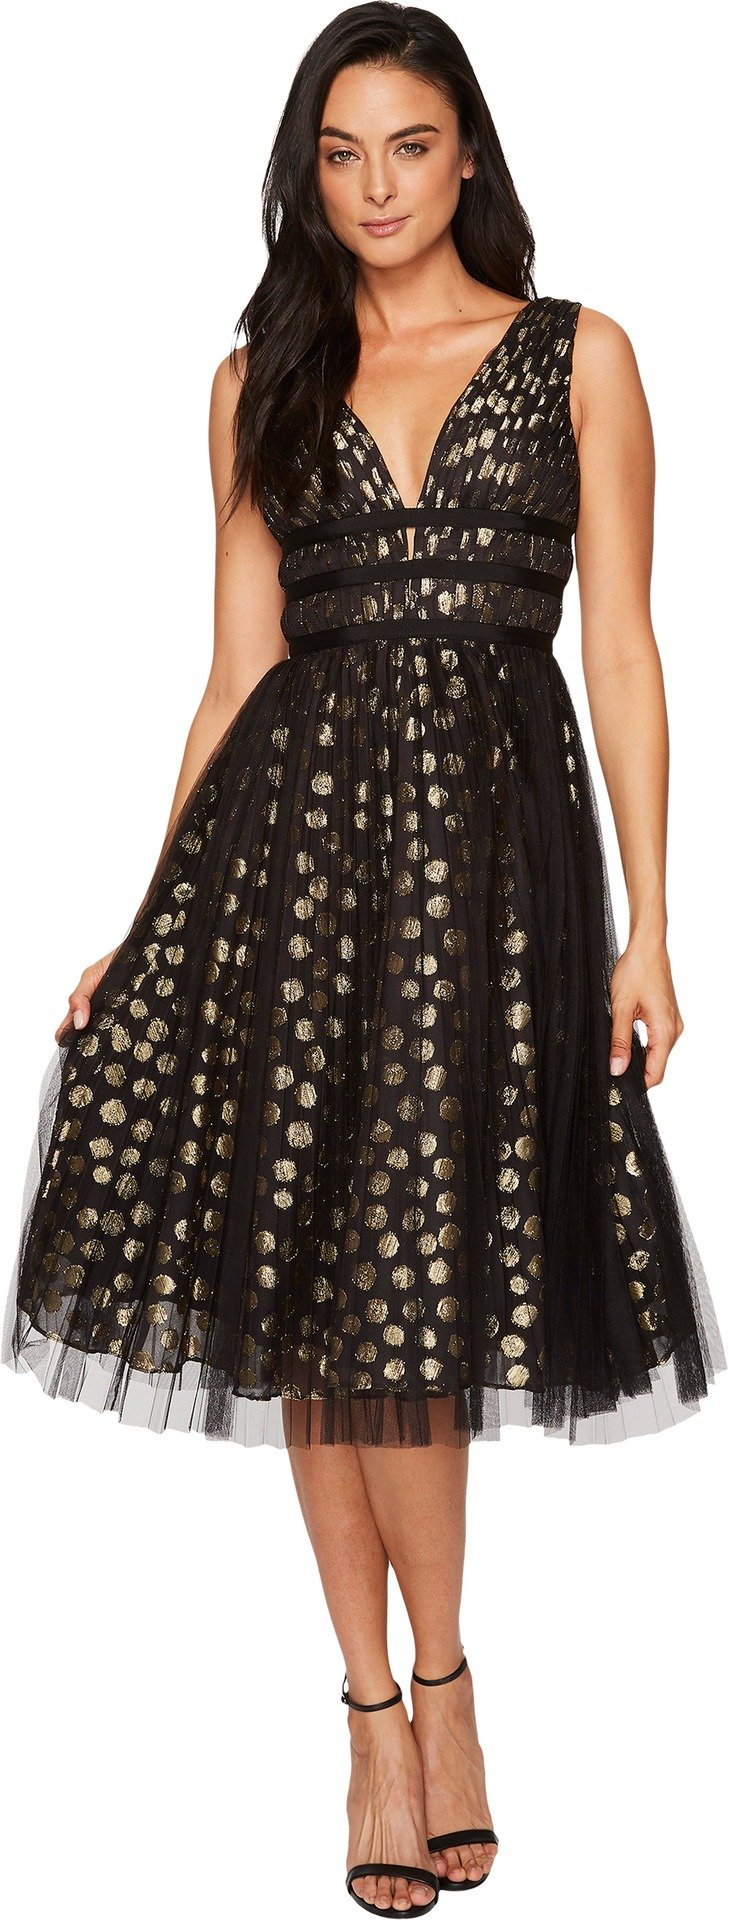 Adrianna Papell Women's Metallic Clip Dot Cocktail Dress, Gold/Black, 12